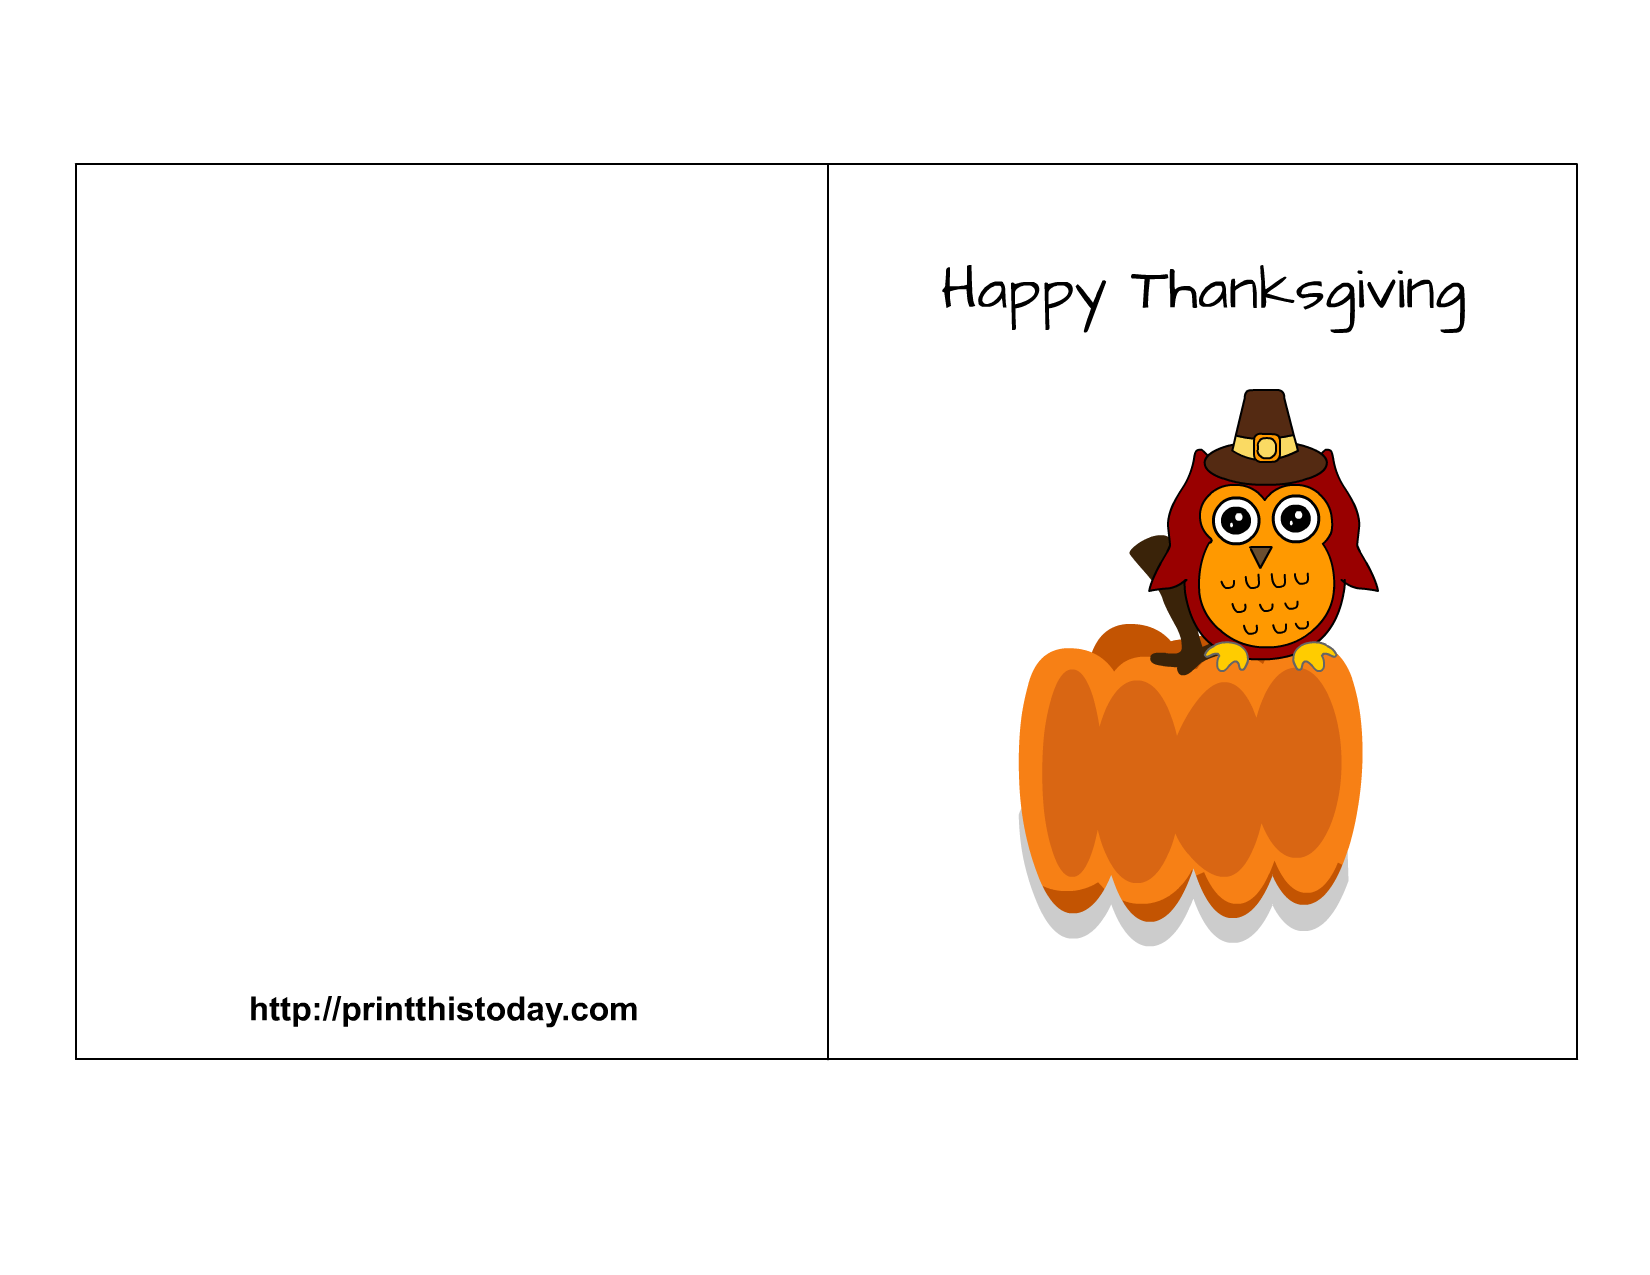 Free printable thanksgiving cards happy thanksgiving card m4hsunfo